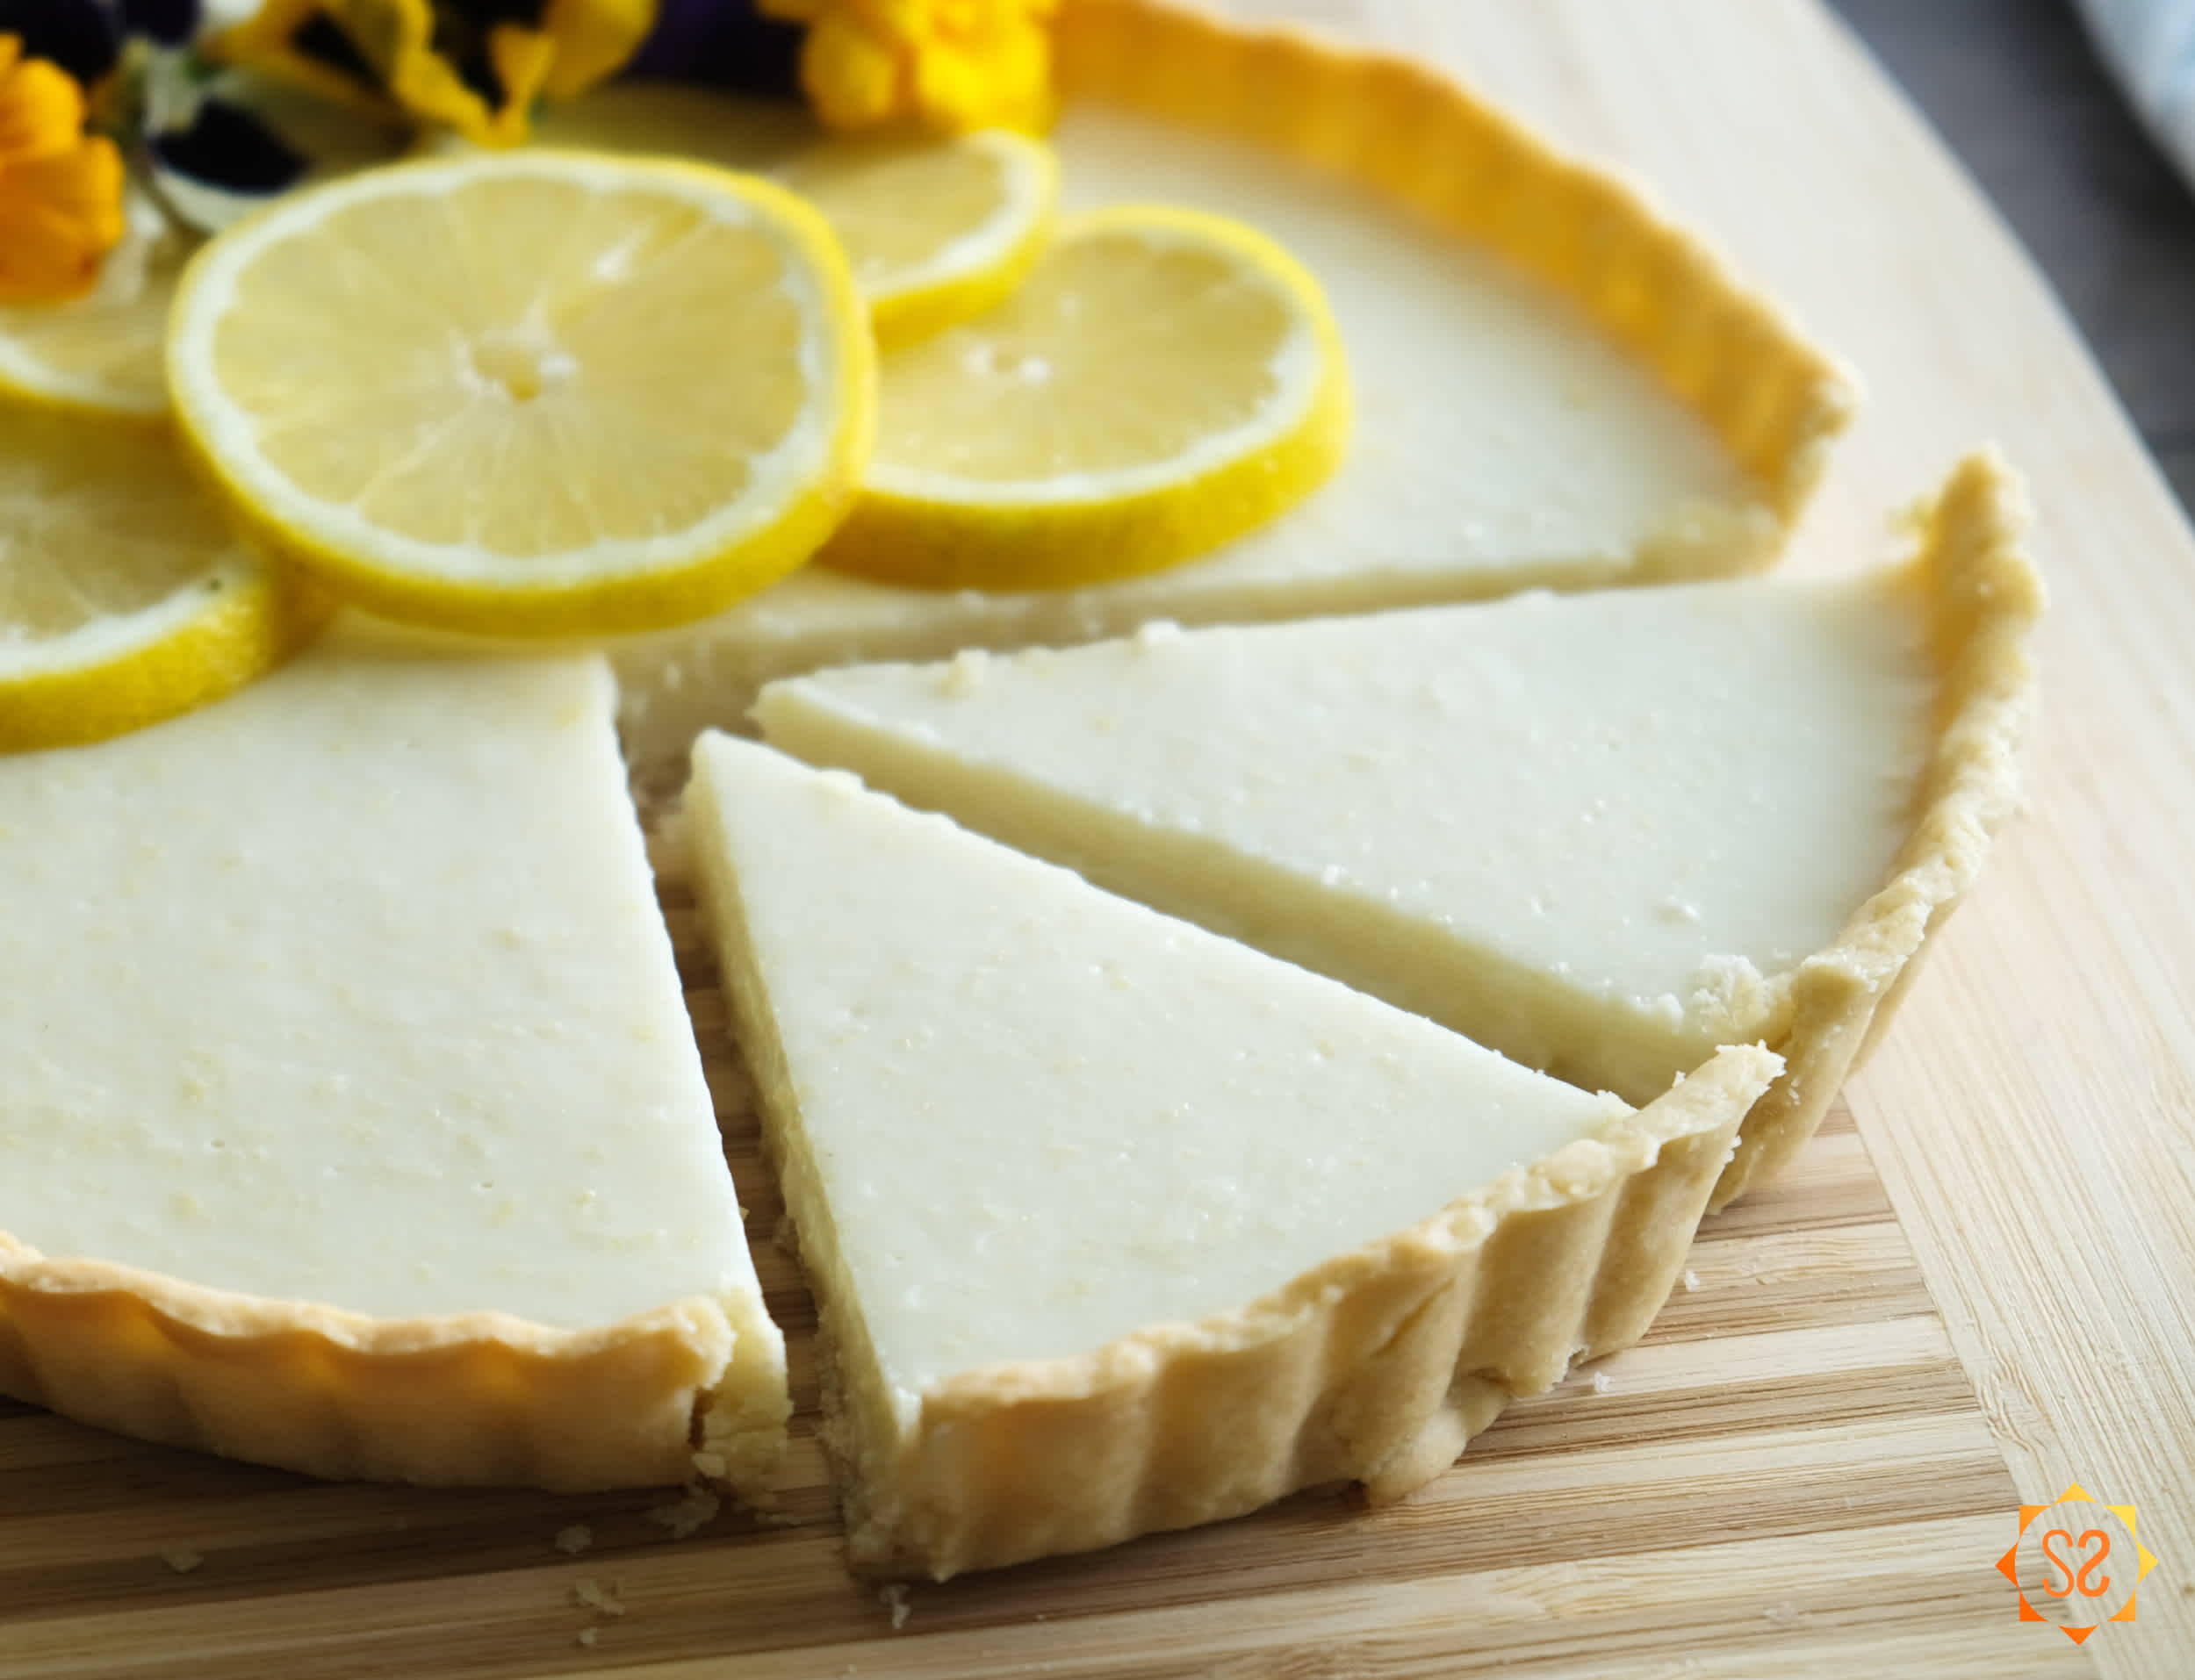 A lemon tart on a cutting board, with two slices sliced.